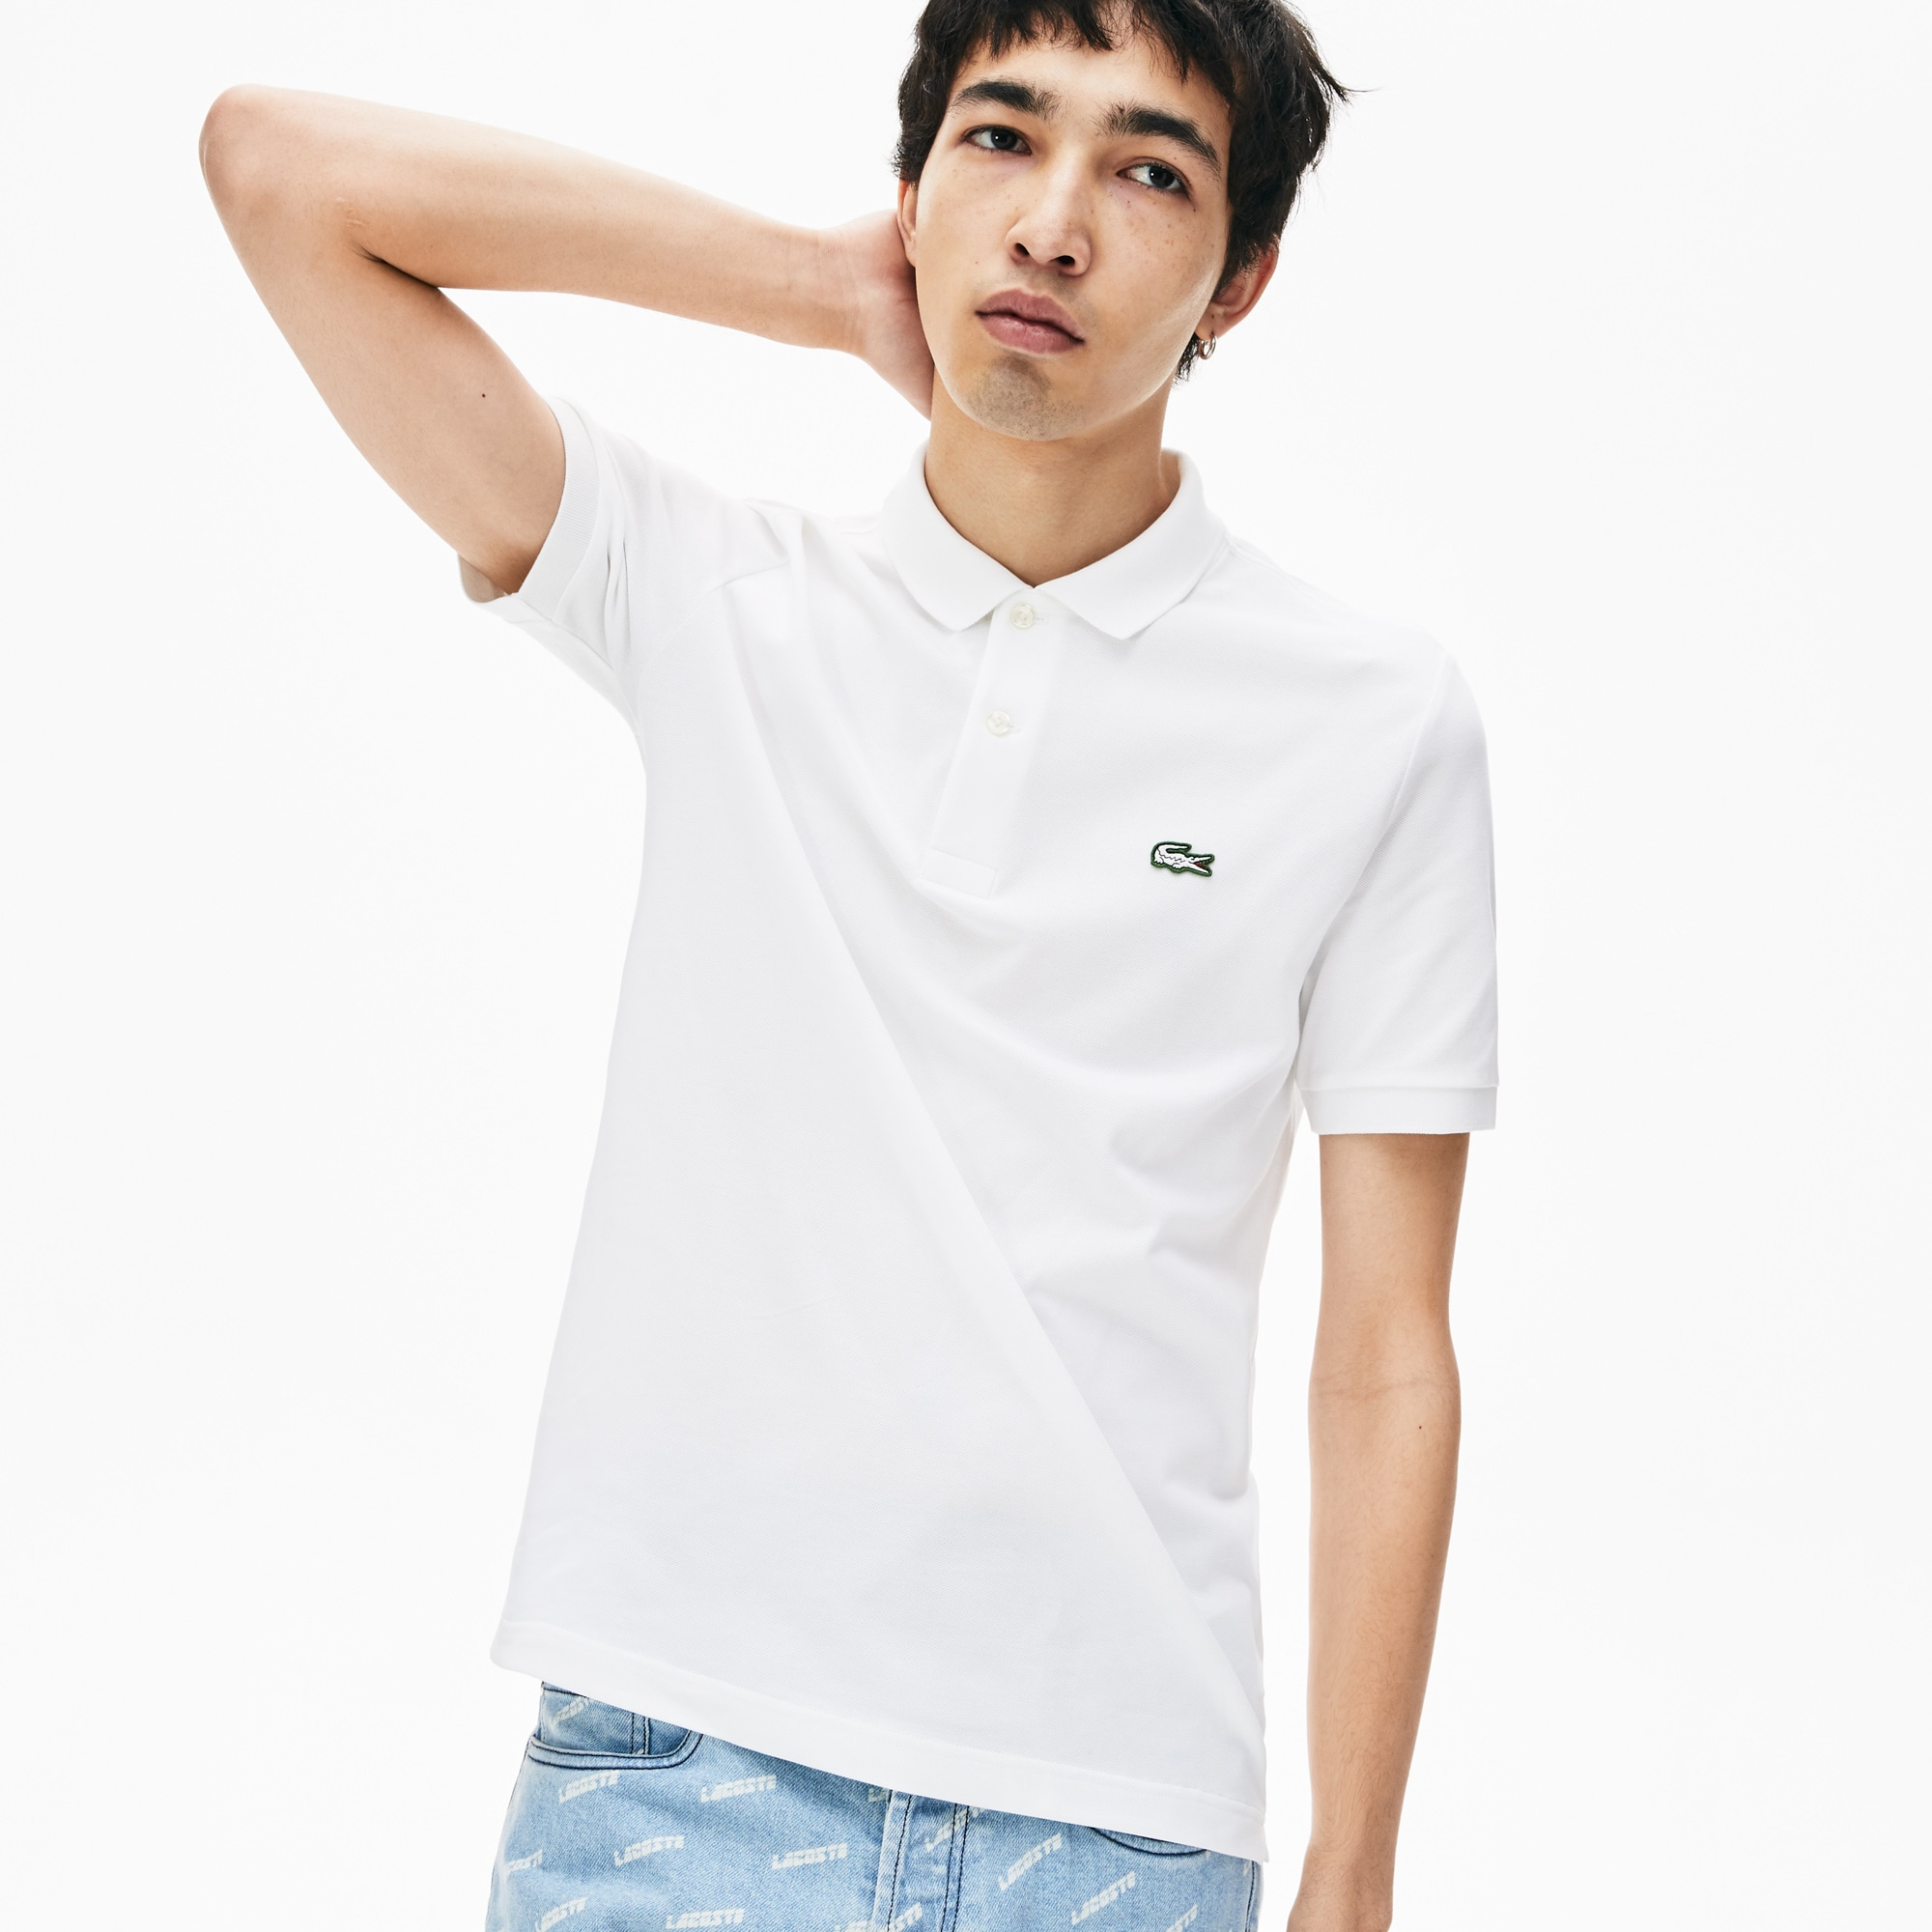 7a417528 Men's Polo Shirts | Lacoste Polo Shirts for Men | LACOSTE